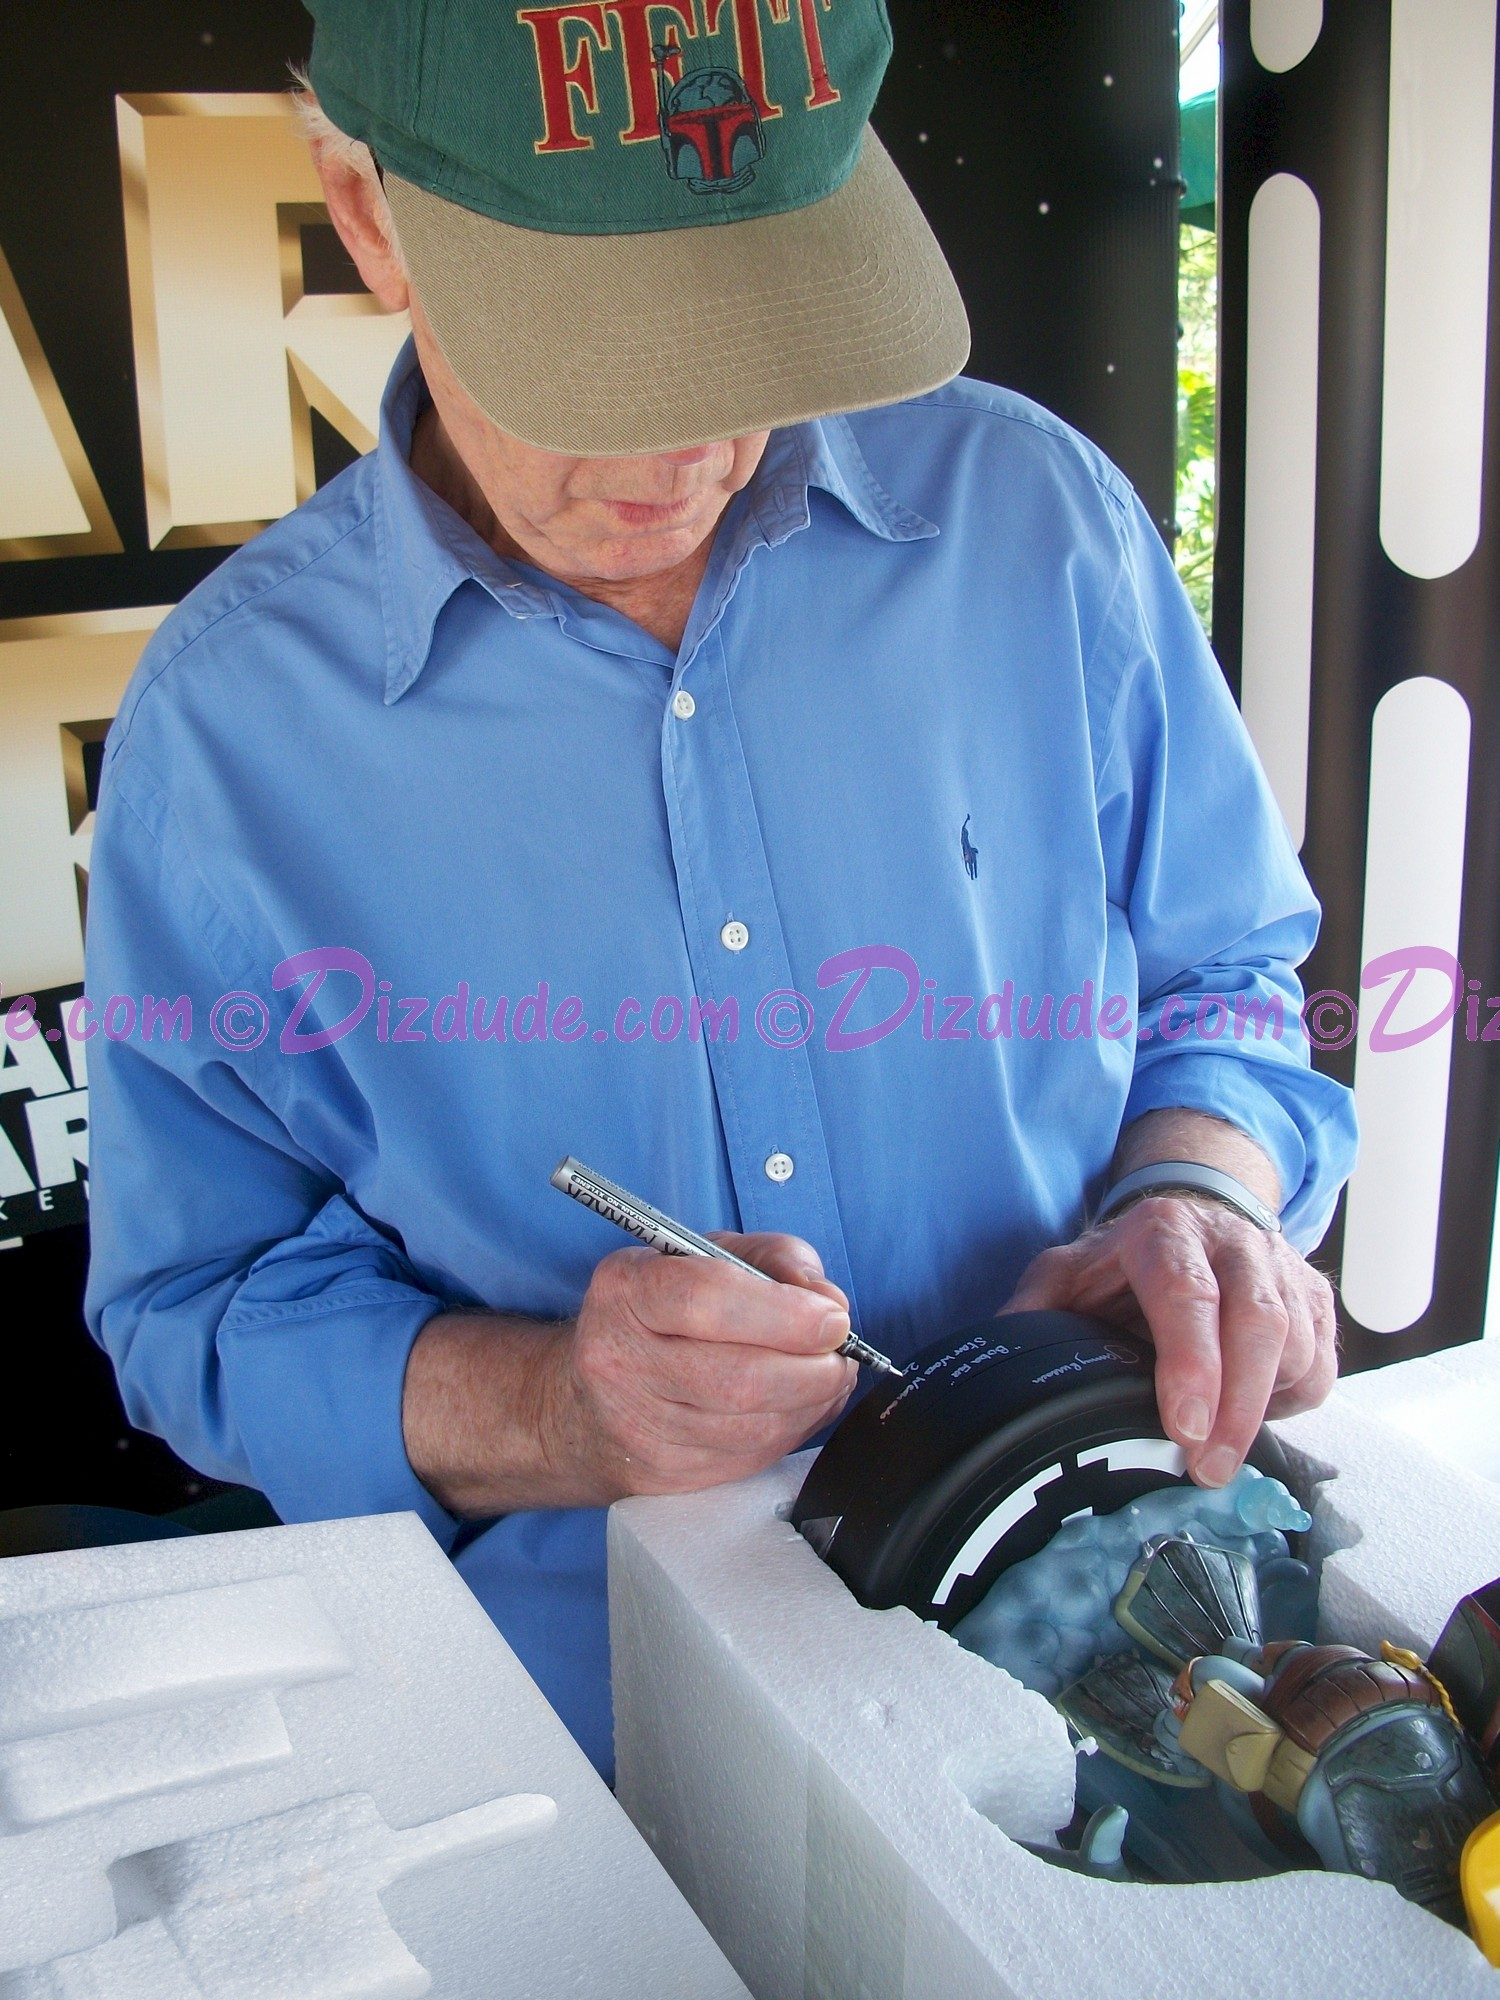 Jeremy Bullock the Star Wars actor who played Boba Fett Autographing the Donald as Boba Fett Medium Big Fig you will recieve this photo ~ © Dizdude.com